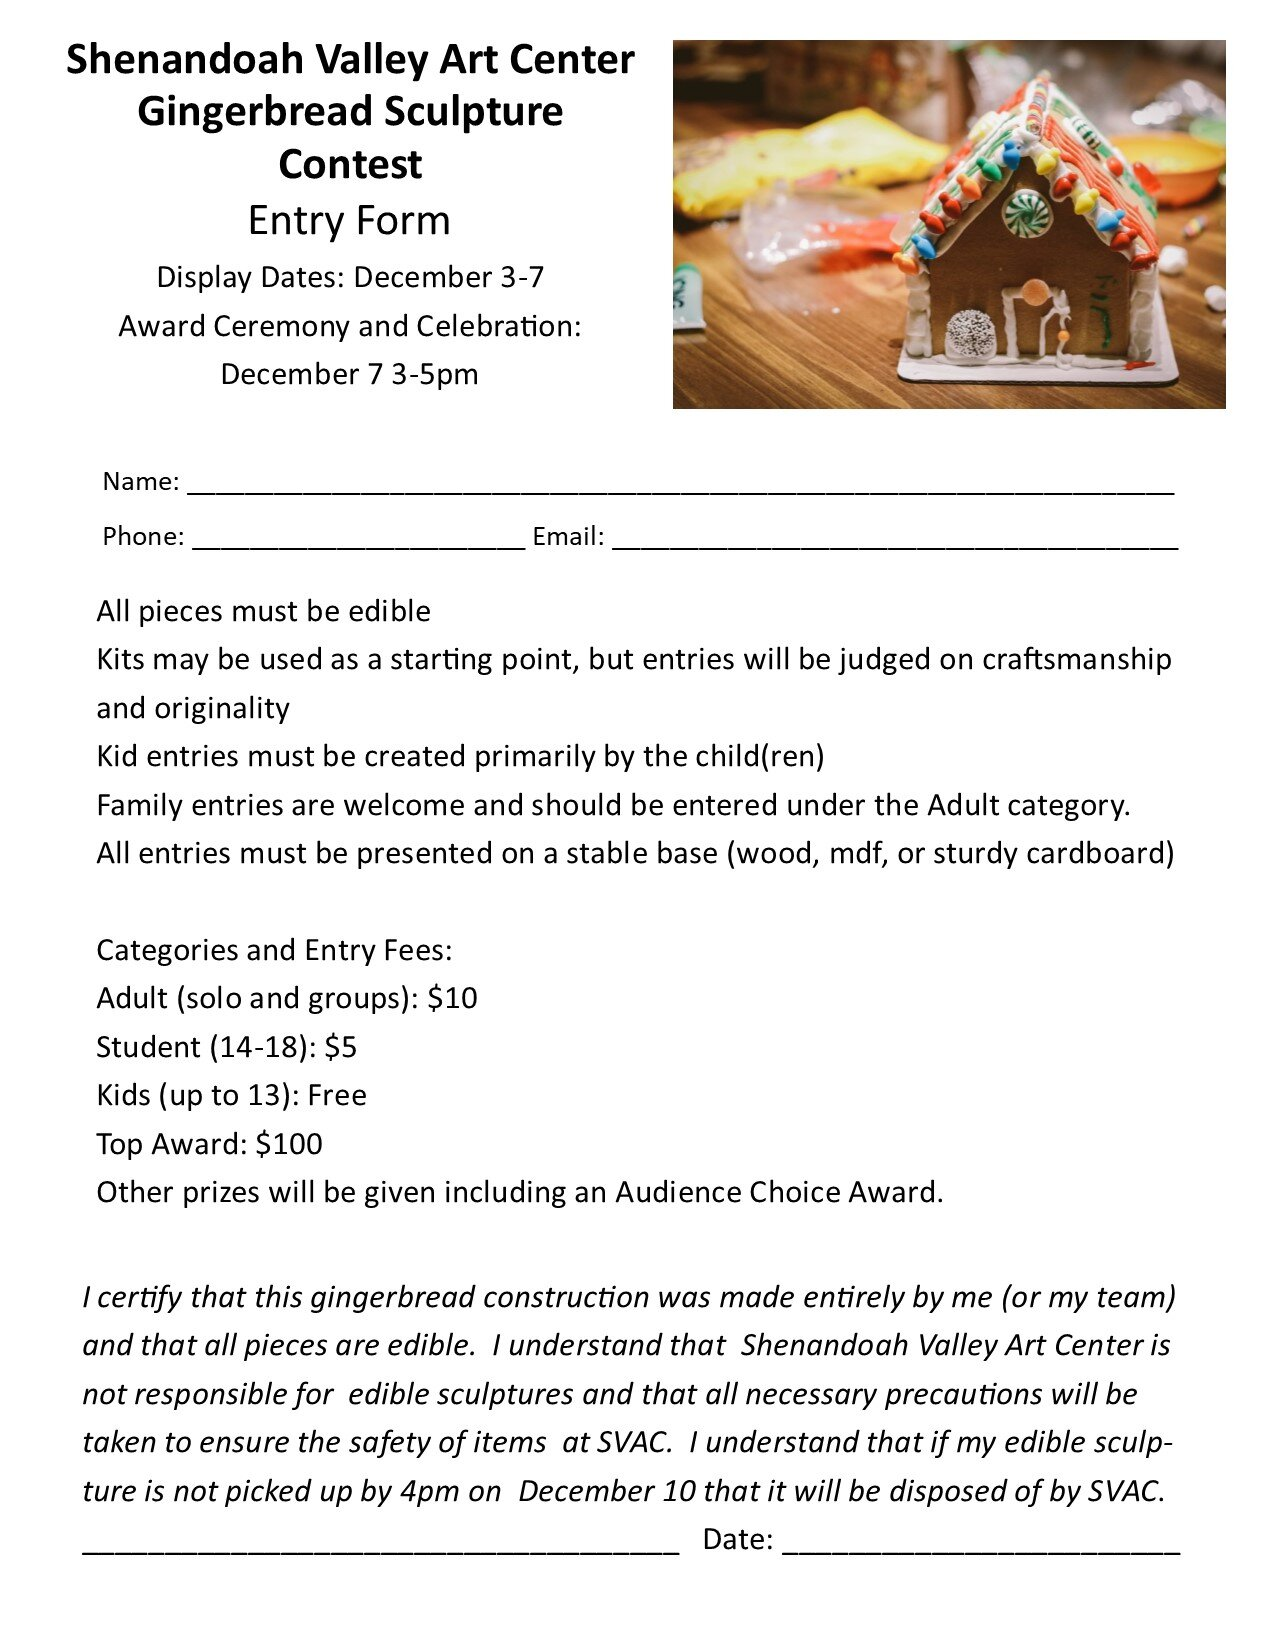 gingerbread house contest entry form.jpg